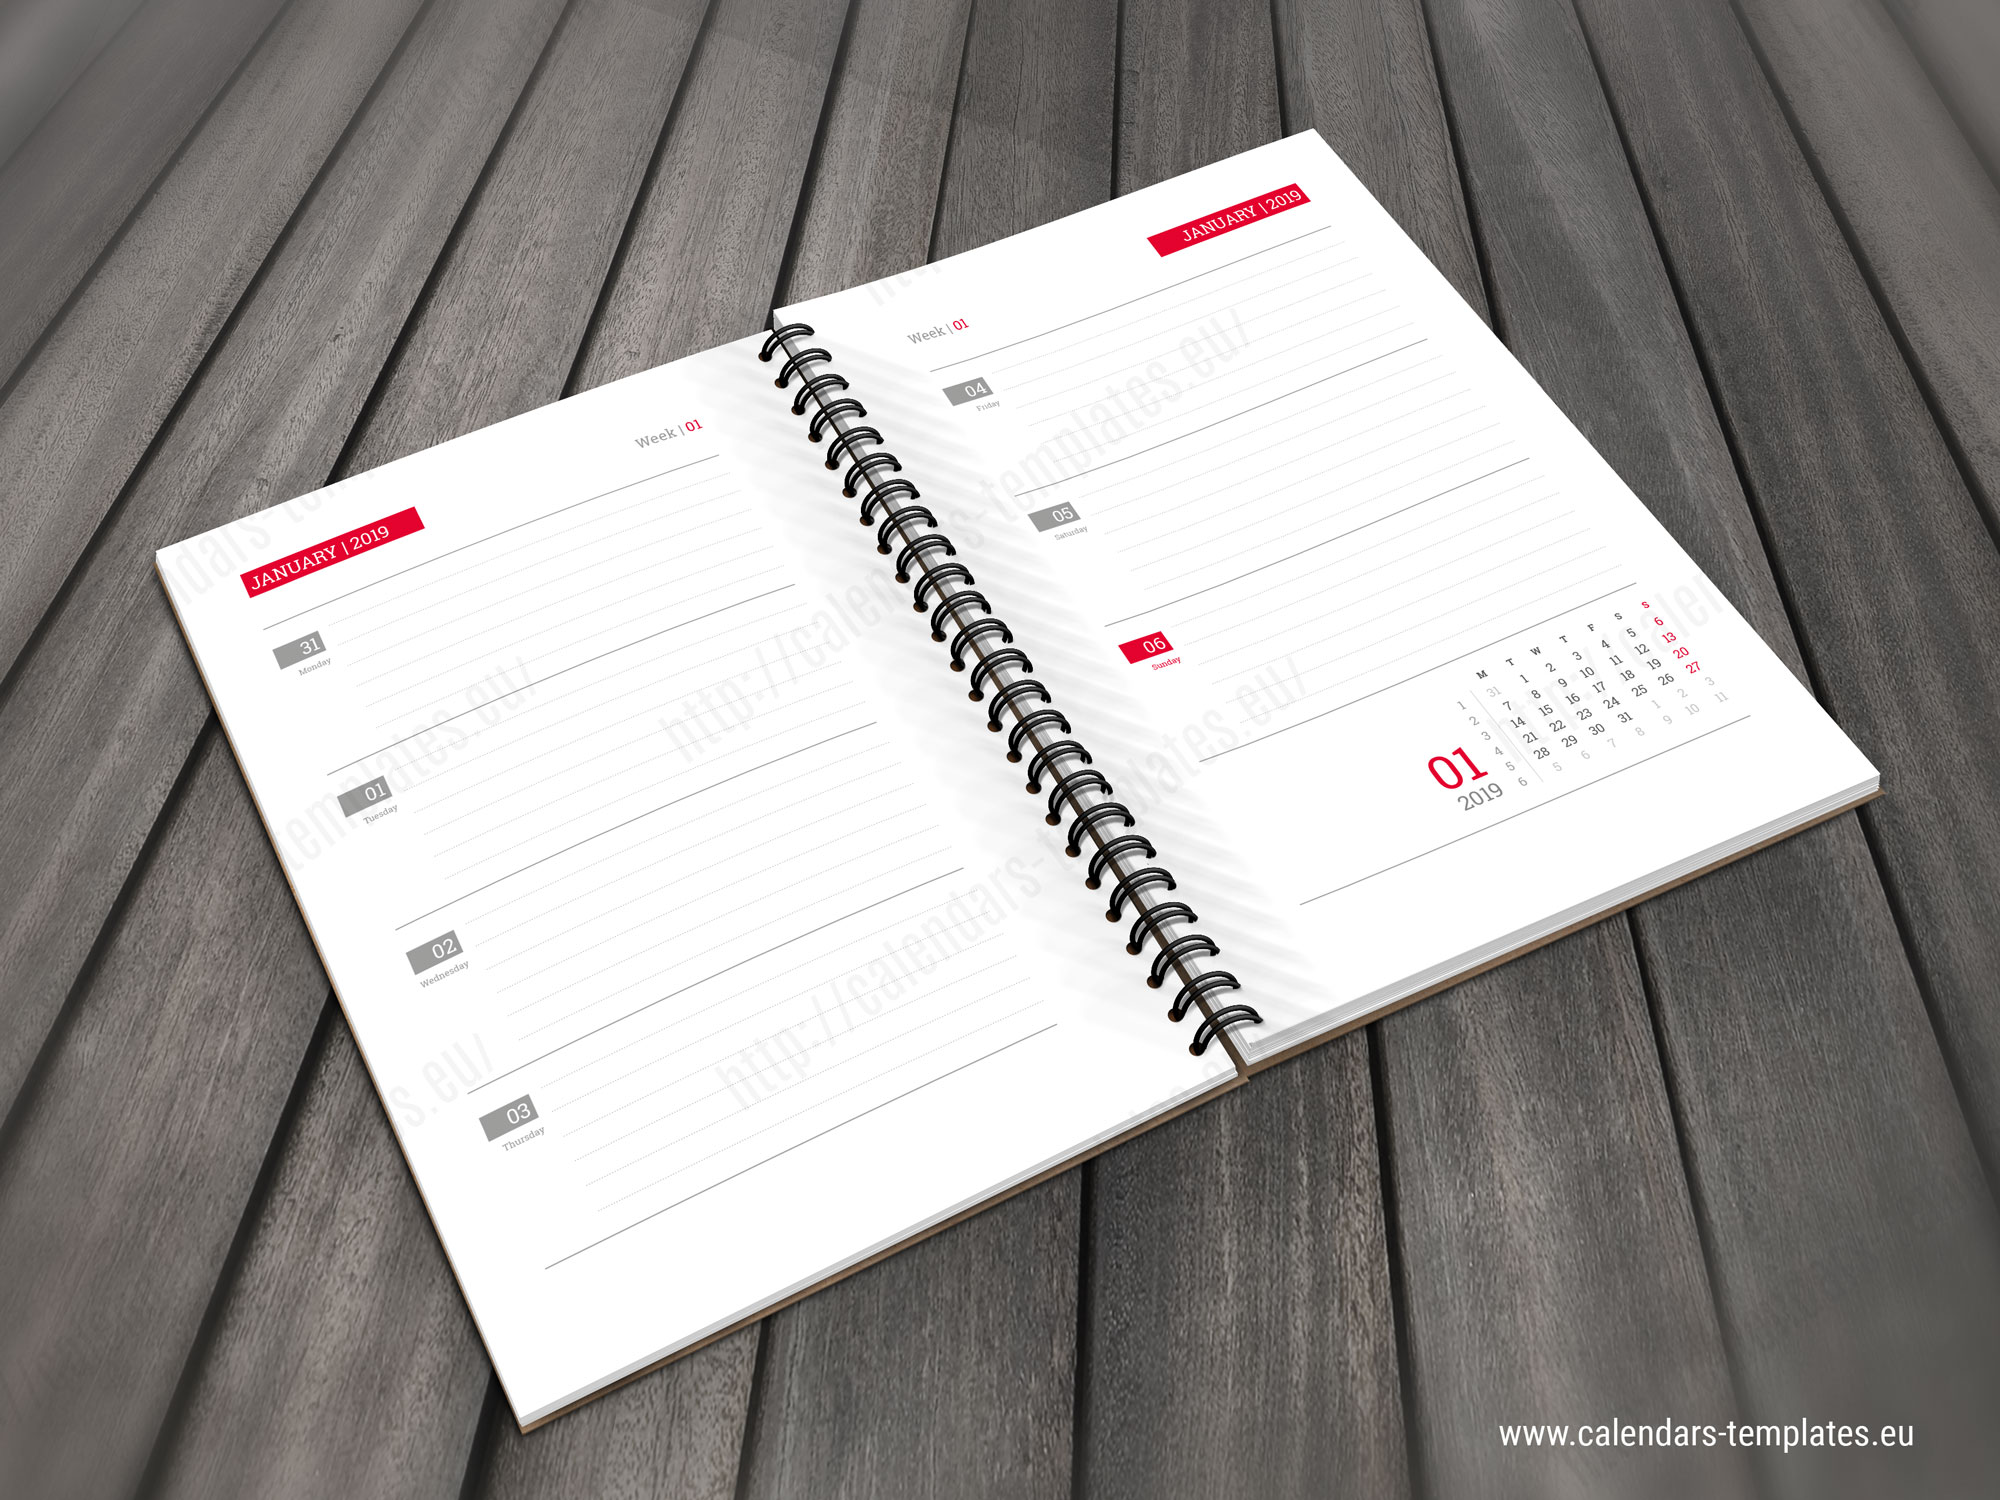 2019 Daily Calendar Planner notebook template in PDf and ...